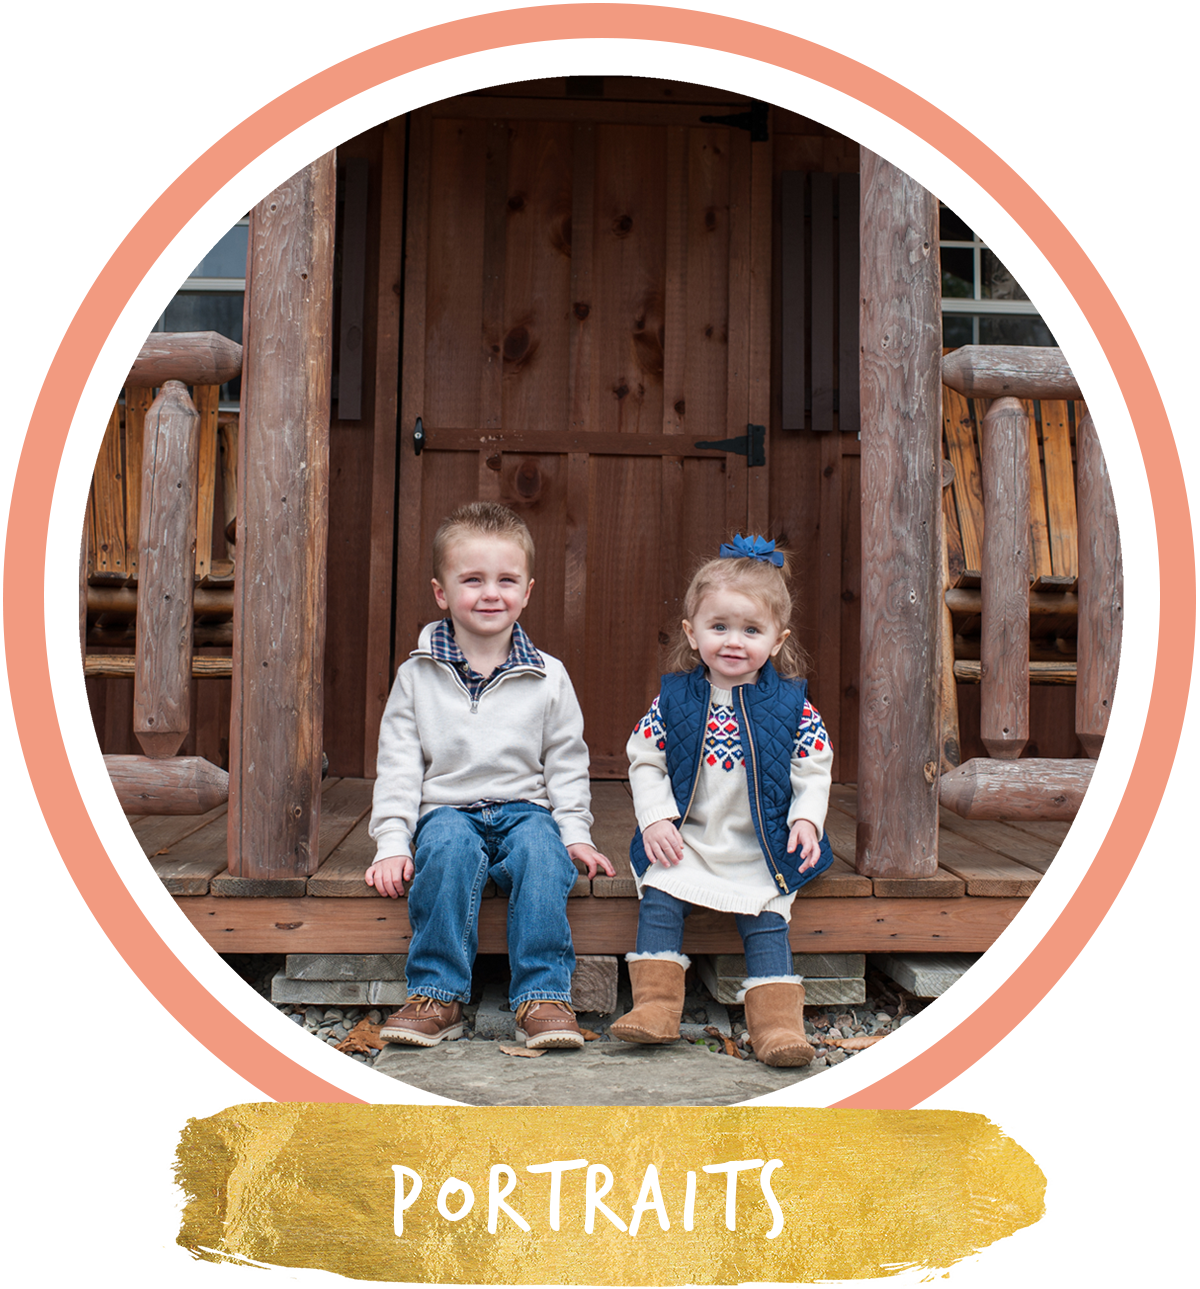 Family Portrait Photography in Upstate NY and the Pocono Mountains.